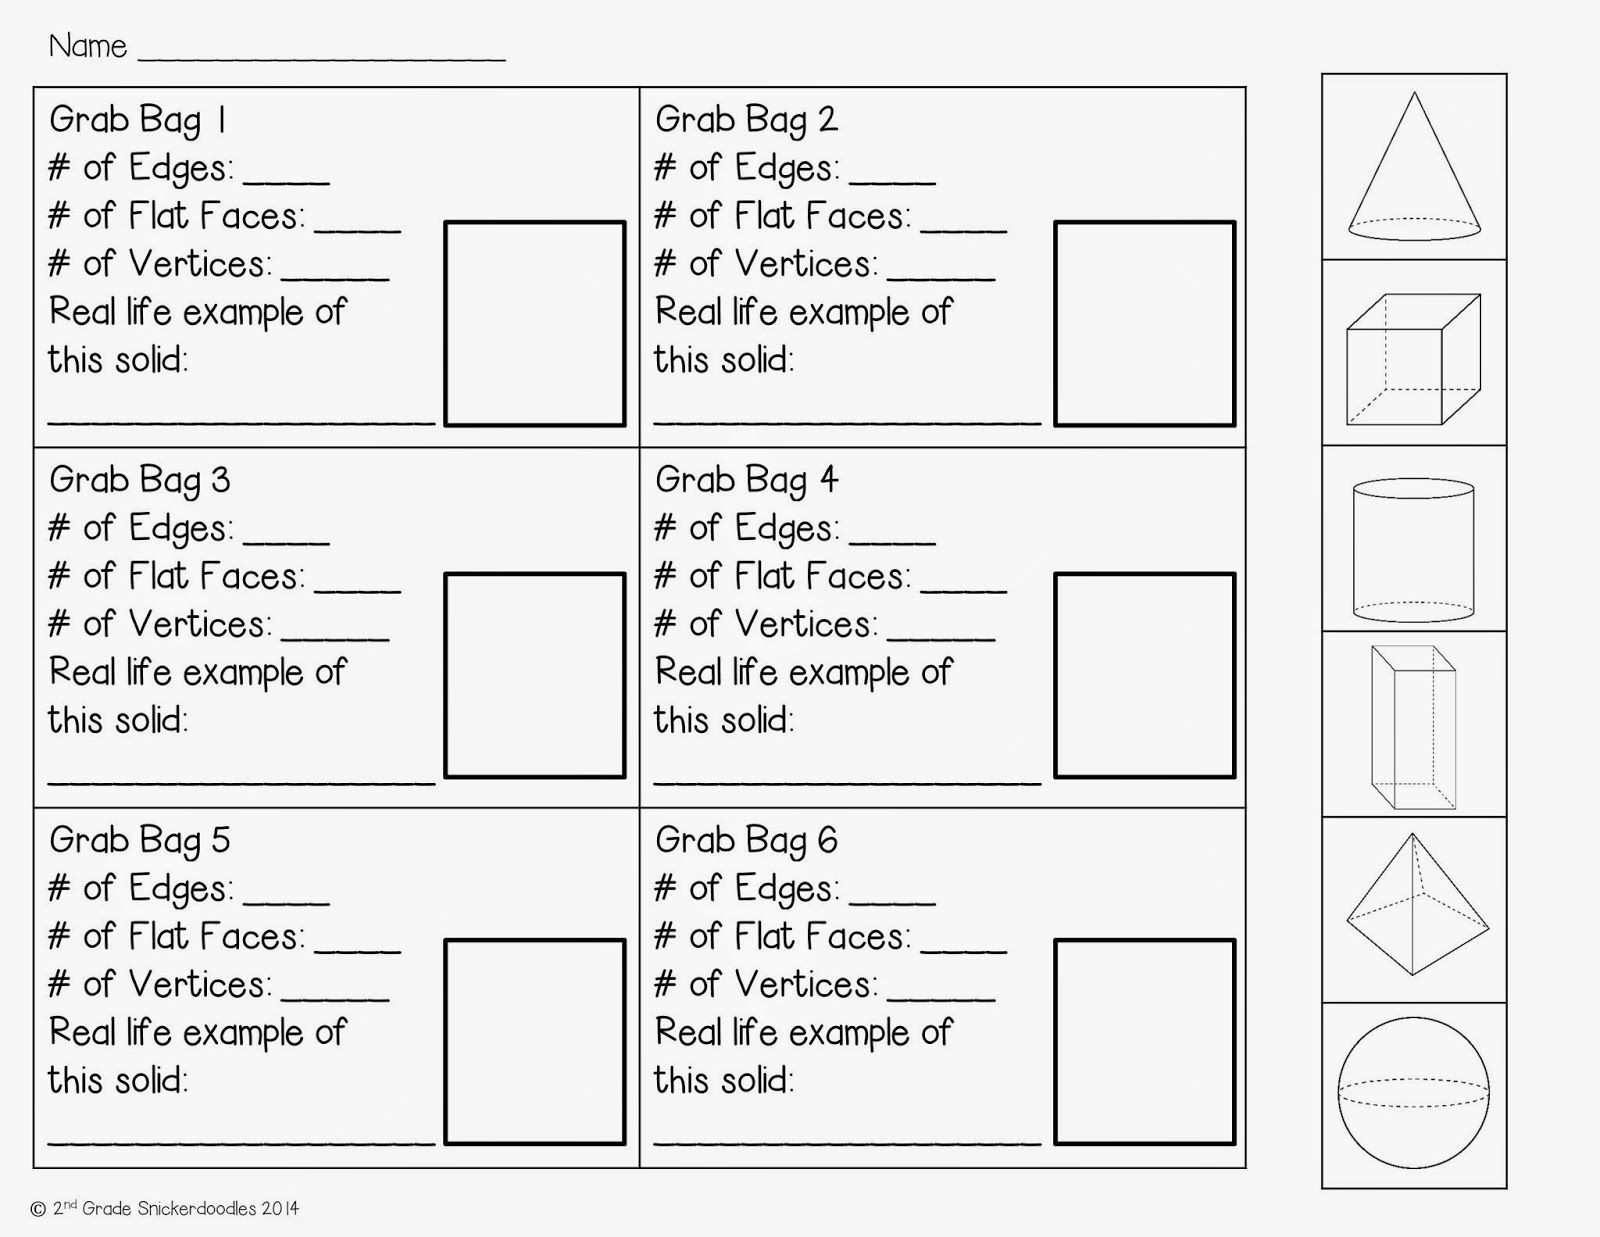 Polygon Worksheets for 2nd Grade Geometric solids Grab Bag Activity